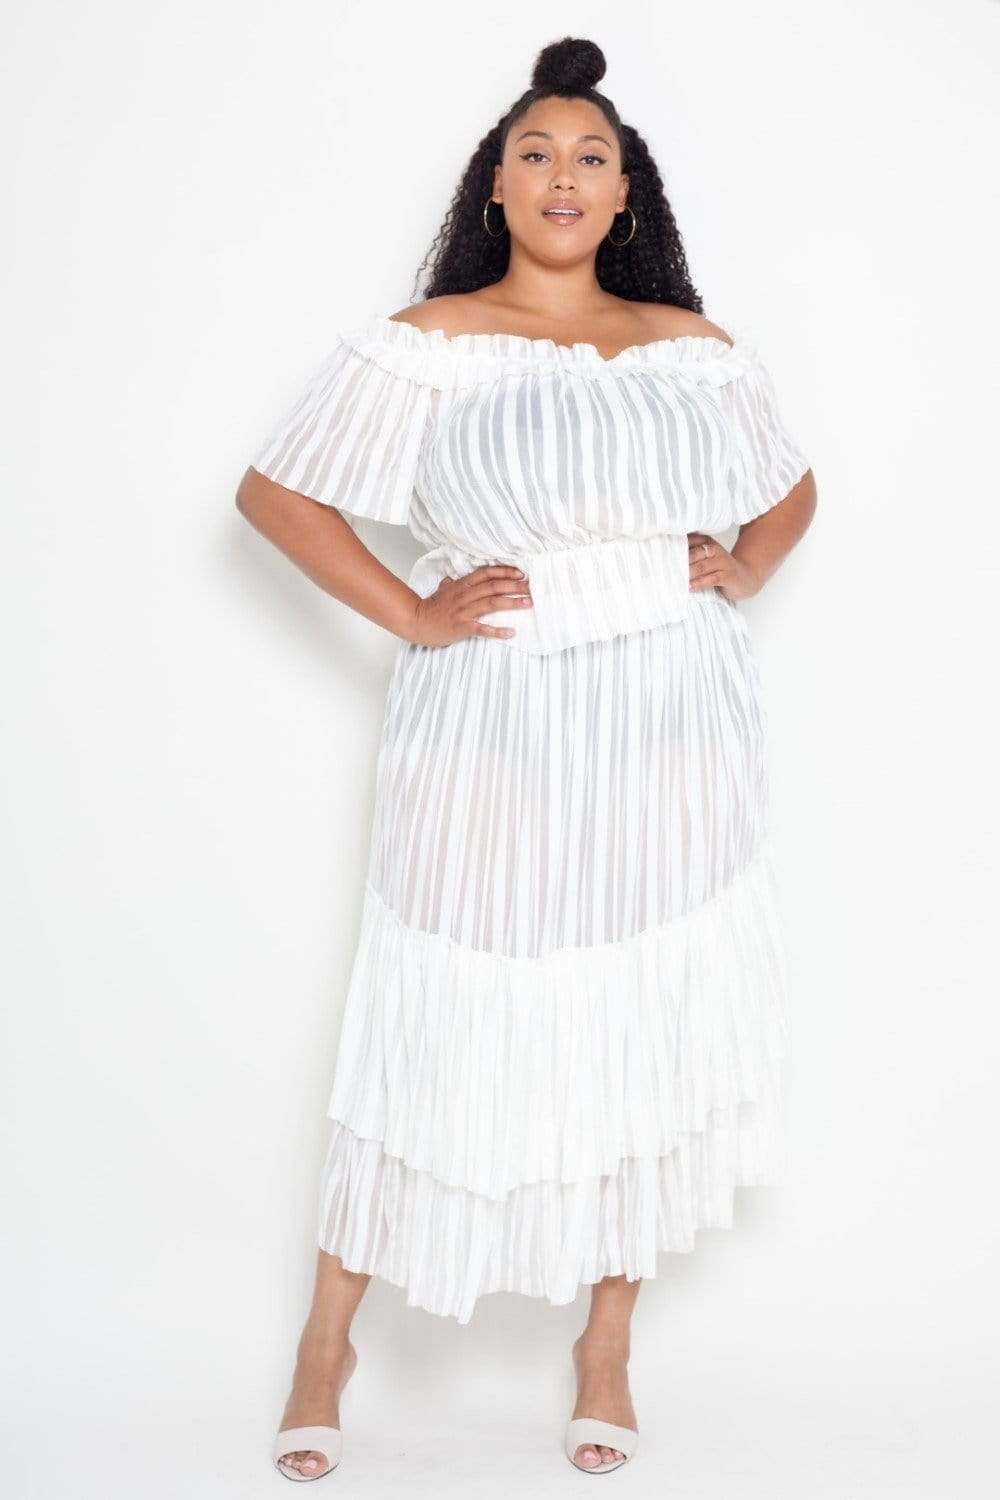 Buxom Couture Sheer Striped Crop Top Skirt Set